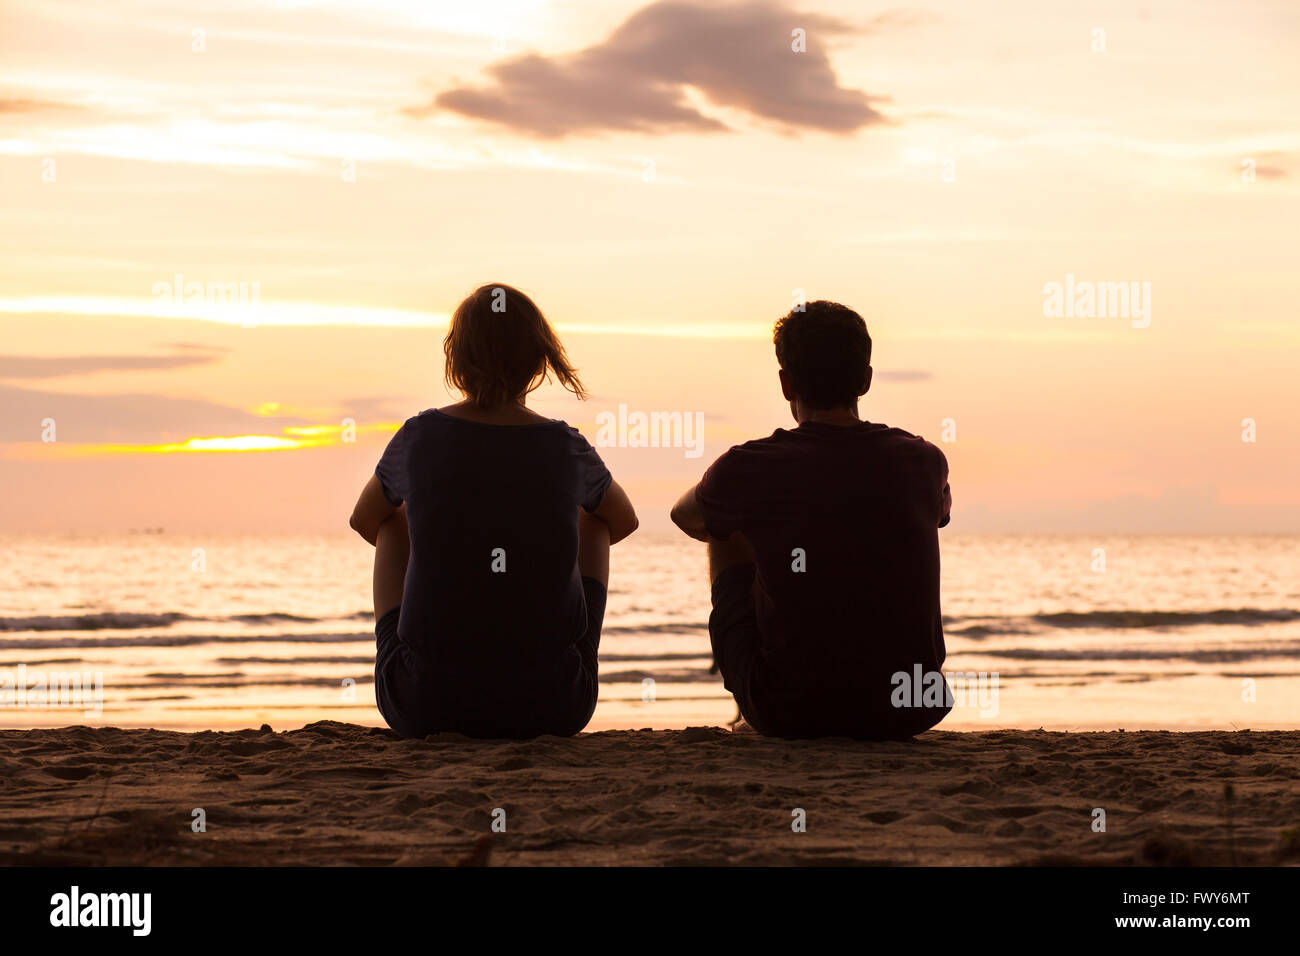 friends sitting together on the beach and watching sunset, friendship concept - Stock Image